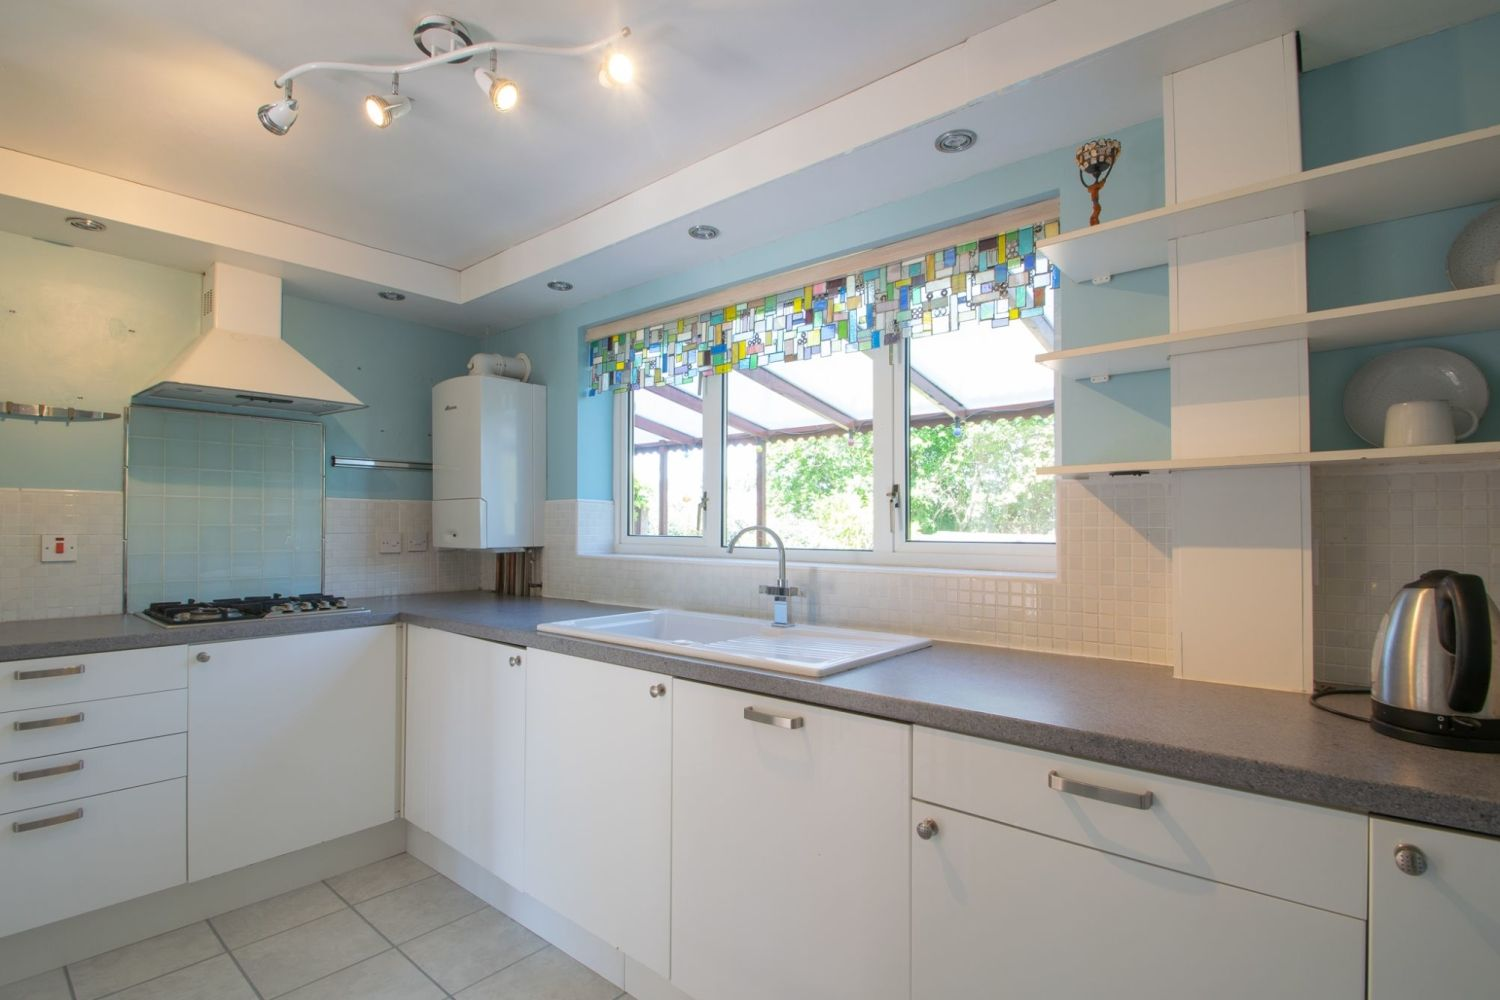 3 bed terraced for sale in Waverley Crescent, Romsley 6